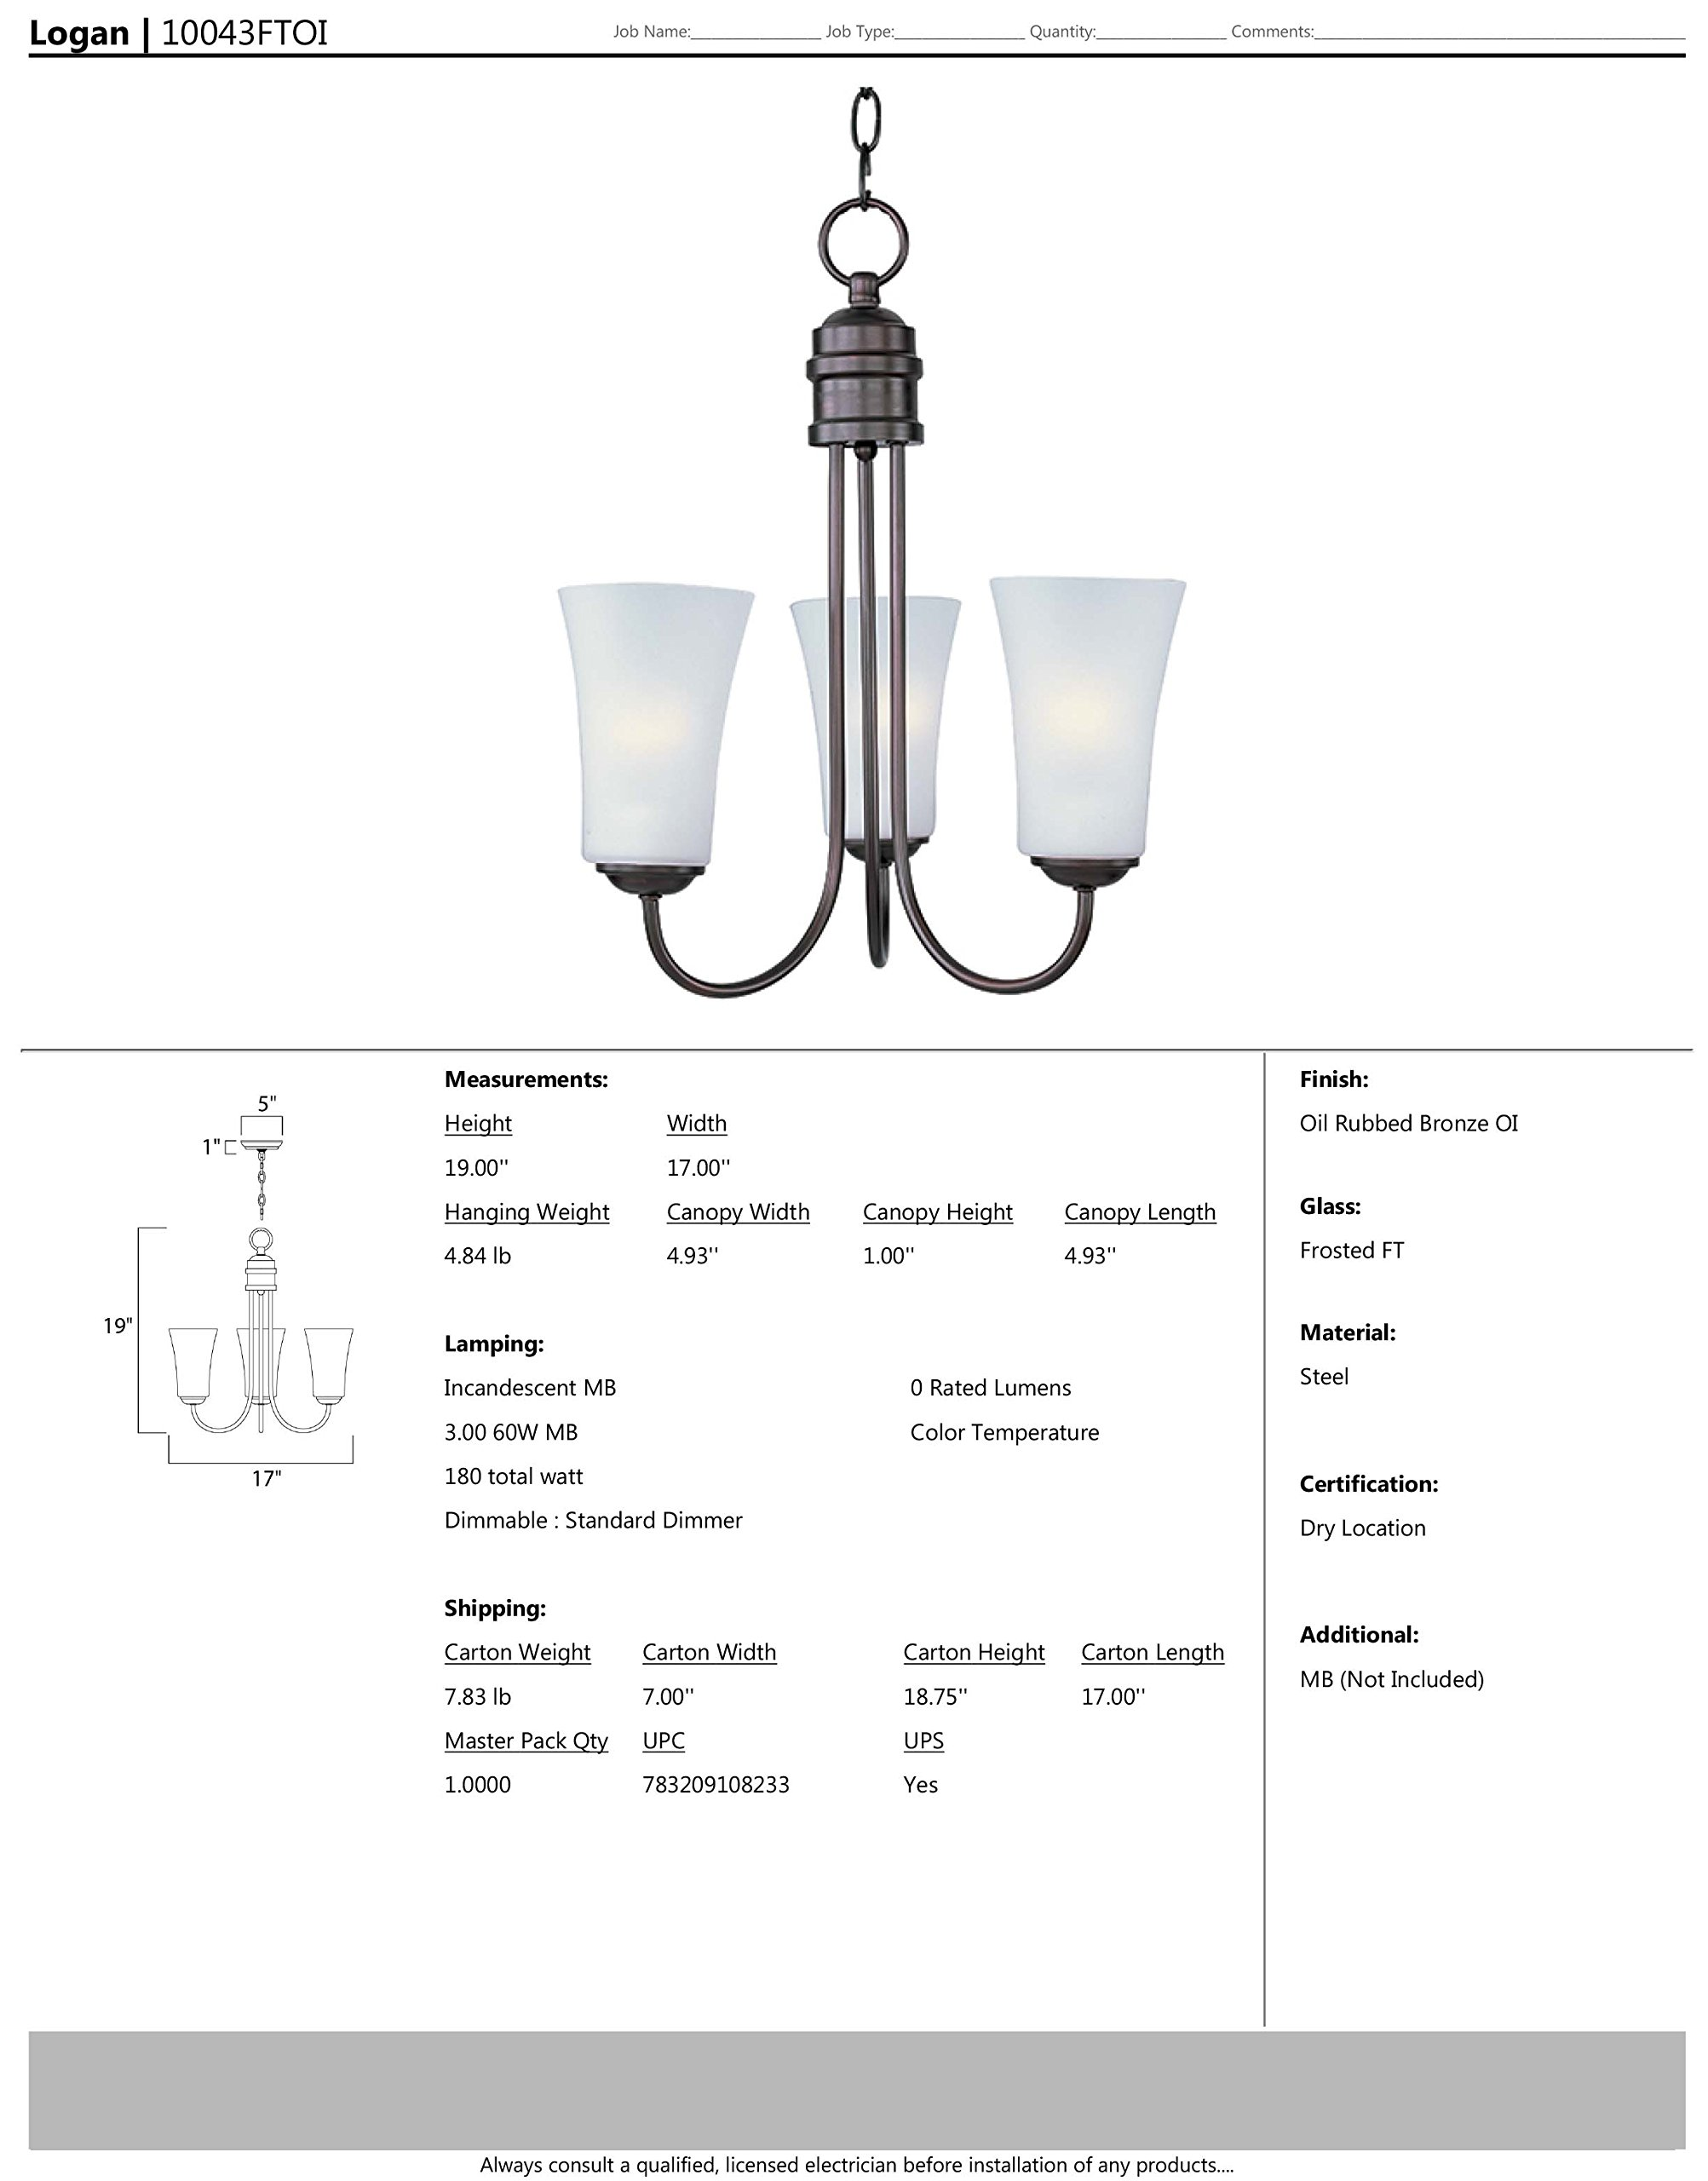 Maxim 10043FTOI Logan 3-Light Chandelier Wall Sconce, Oil Rubbed Bronze Finish, Frosted Glass, MB Incandescent Incandescent Bulb , 100W Max., Dry Safety Rating, Standard Dimmable, Glass Shade Material, 3450 Rated Lumens by Maxim Lighting (Image #2)